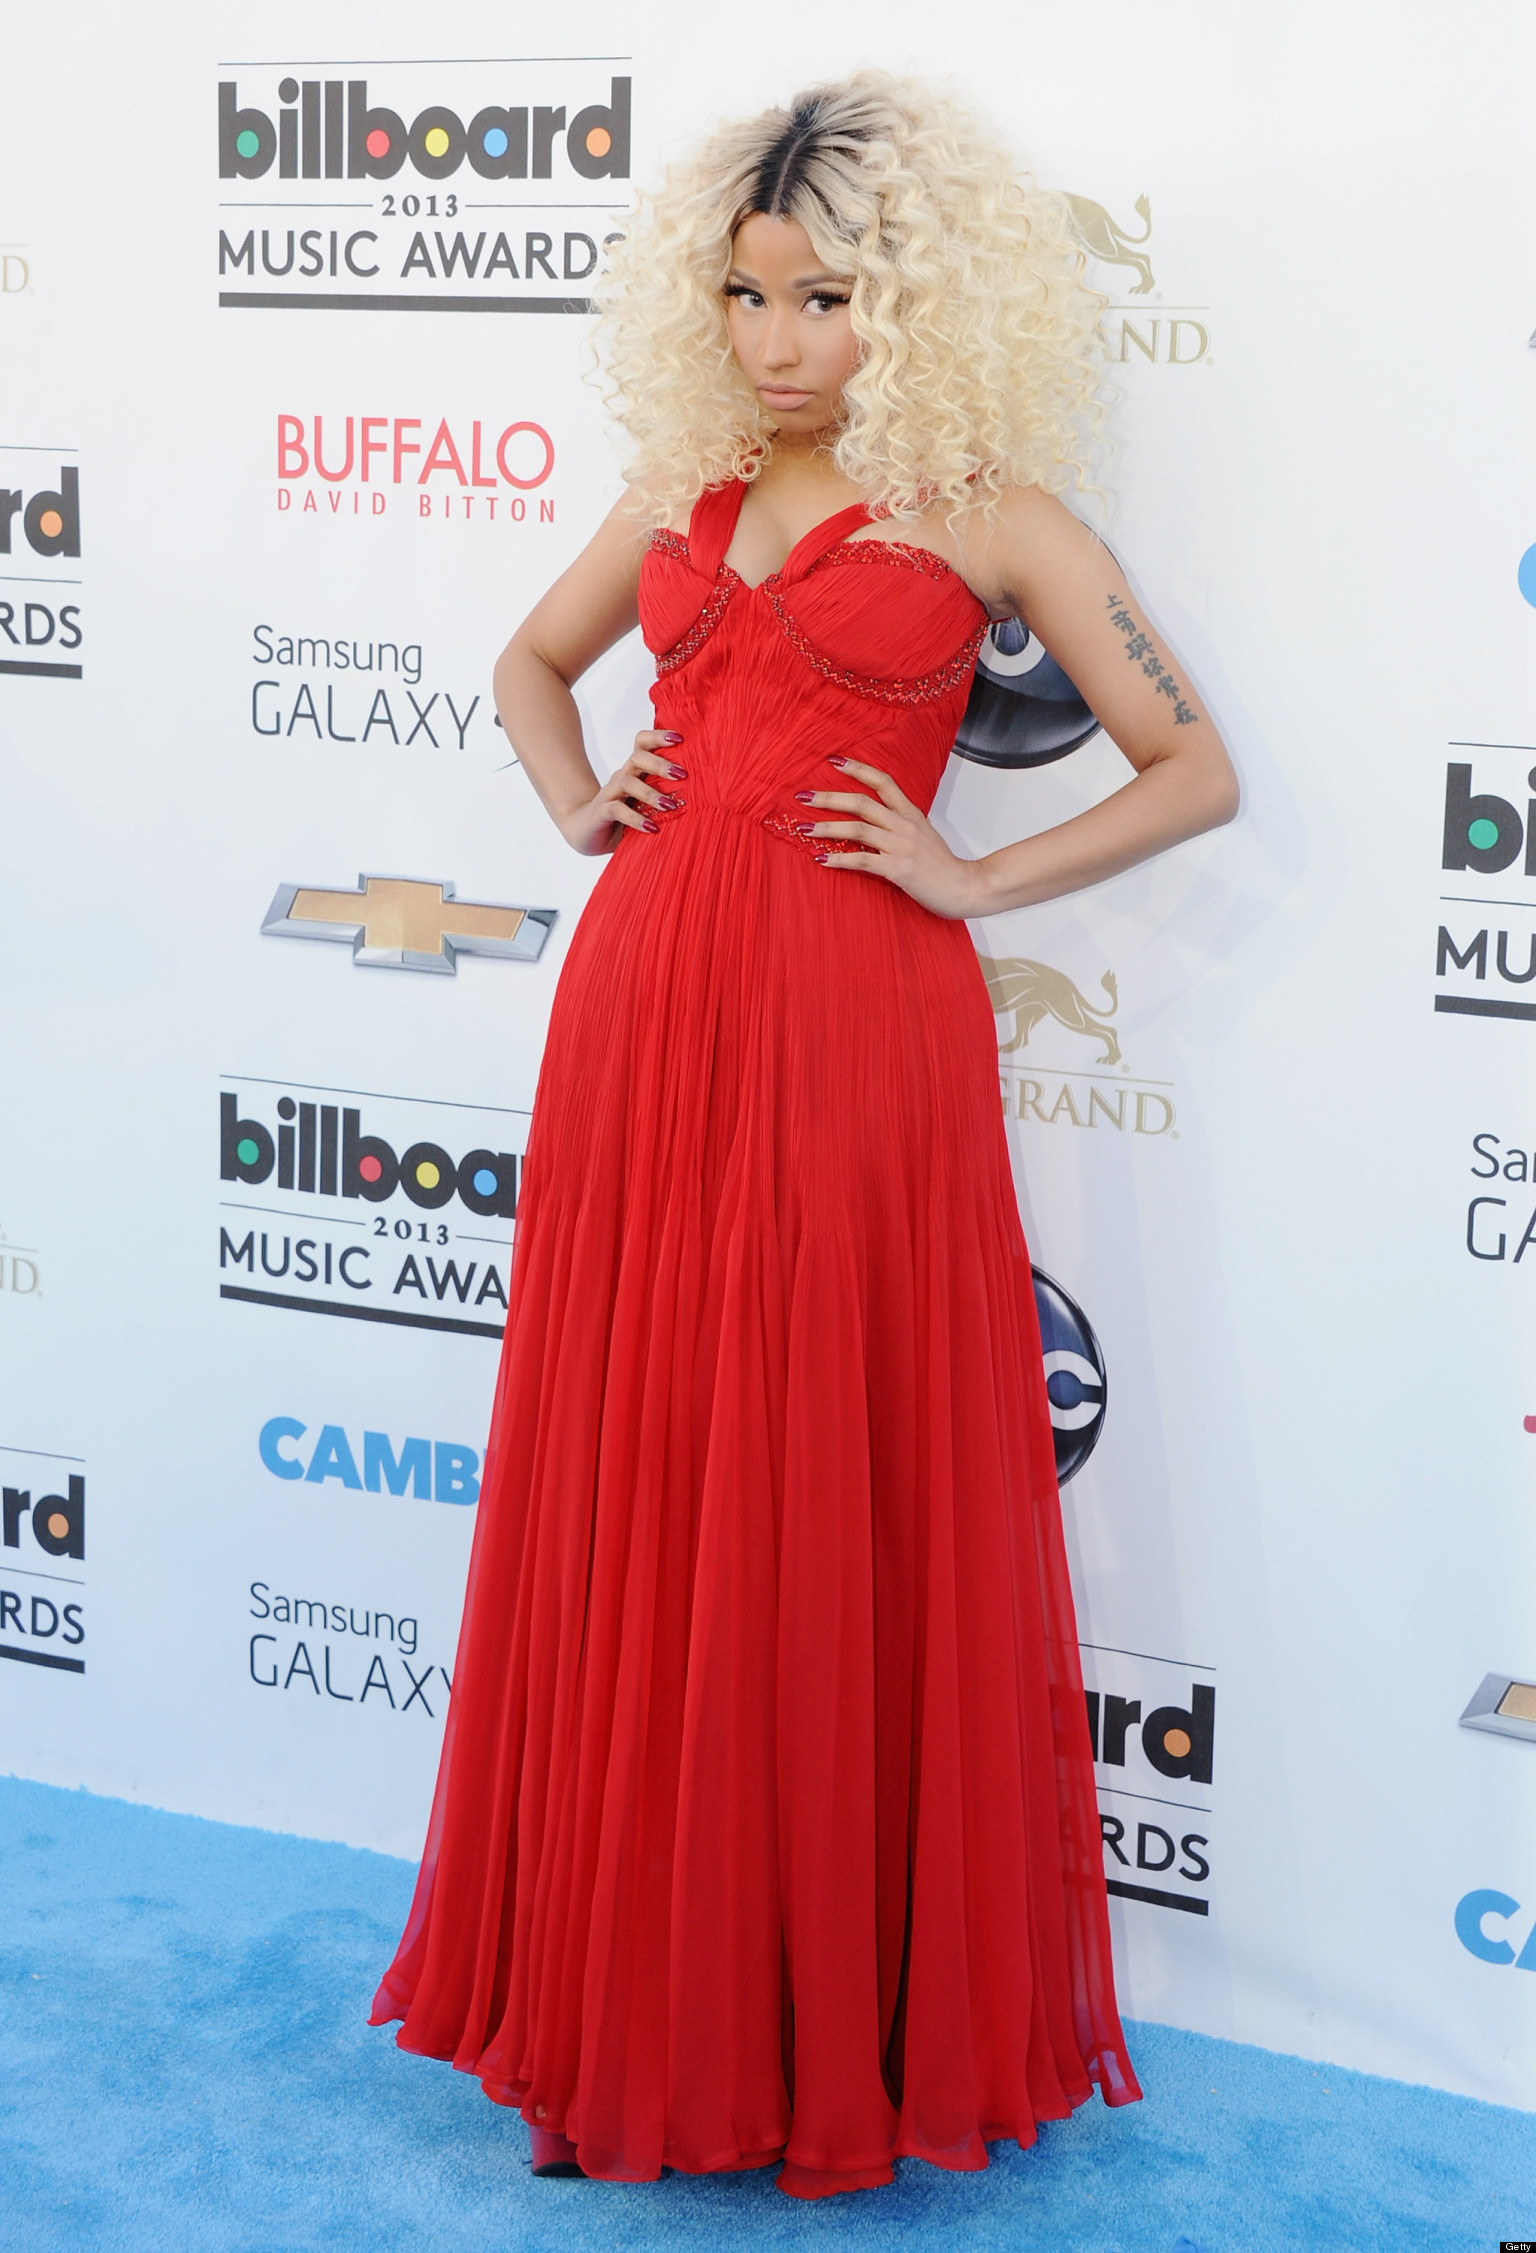 PHOTOS: Billboard Music Awards Red Carpet Roundup